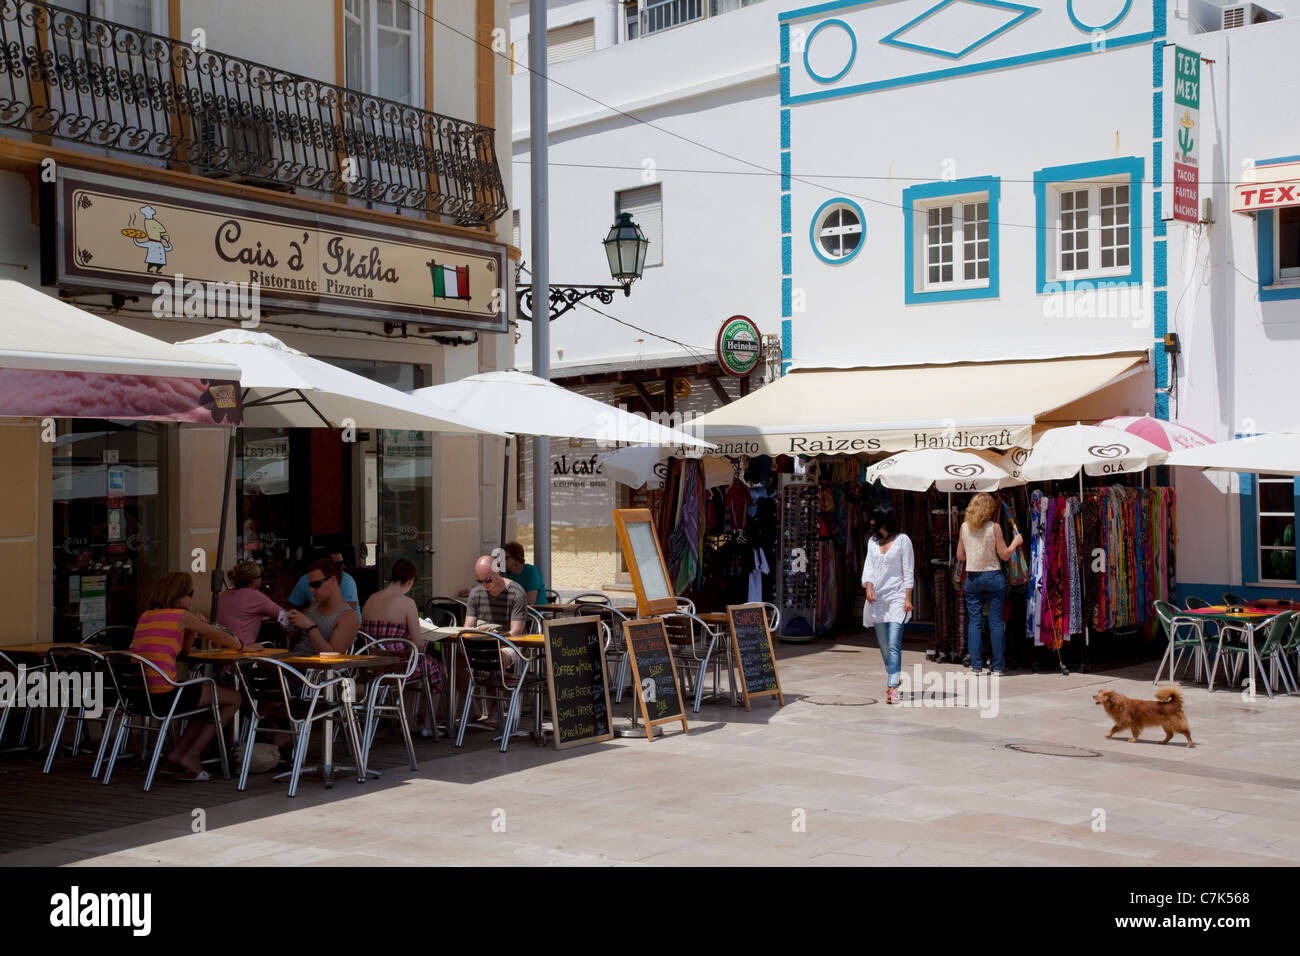 Portugal, Algarve, Albufeira, Shops & Restaurant - Stock Image